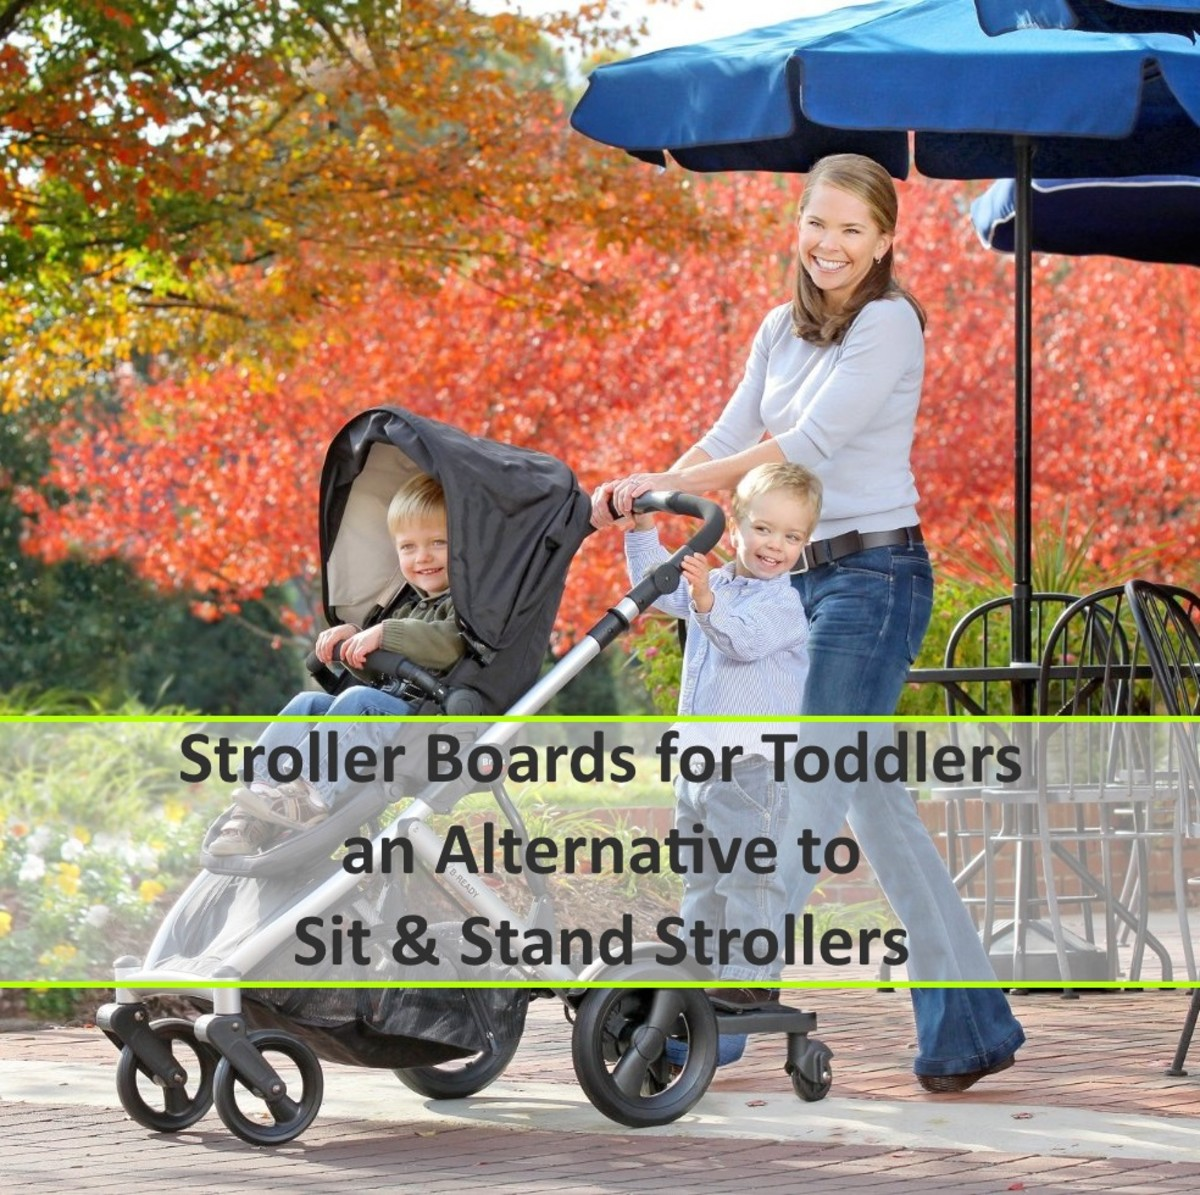 Universal Stroller Board Attachment for Toddlers | 2015 Reviews